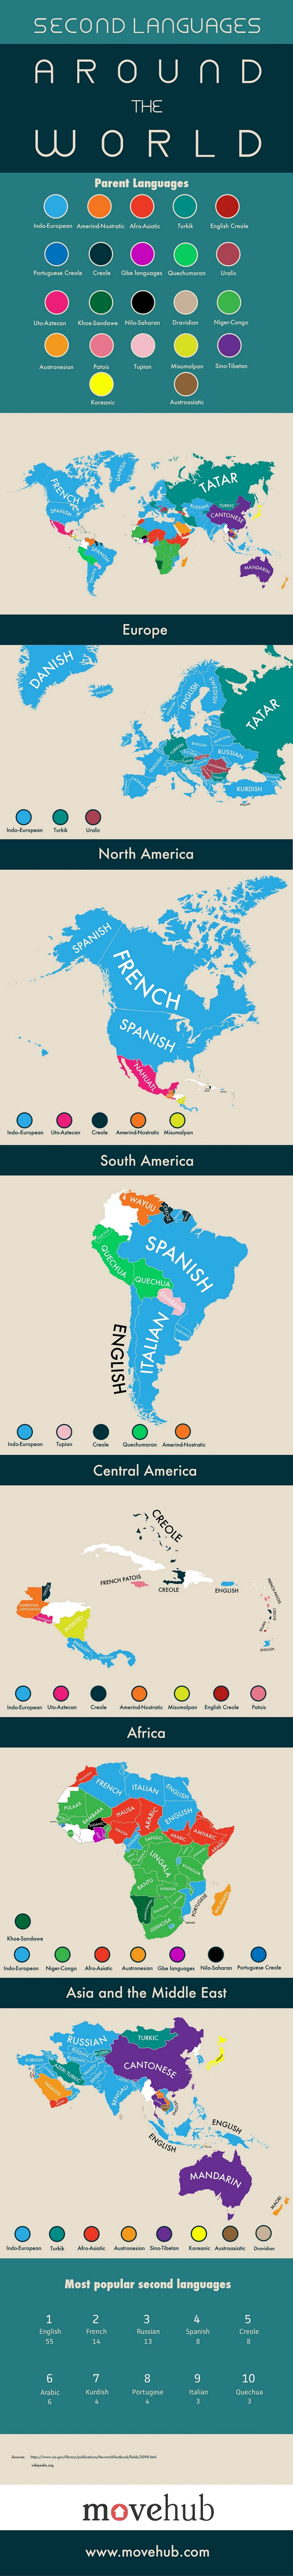 Second languages around the world - infographic